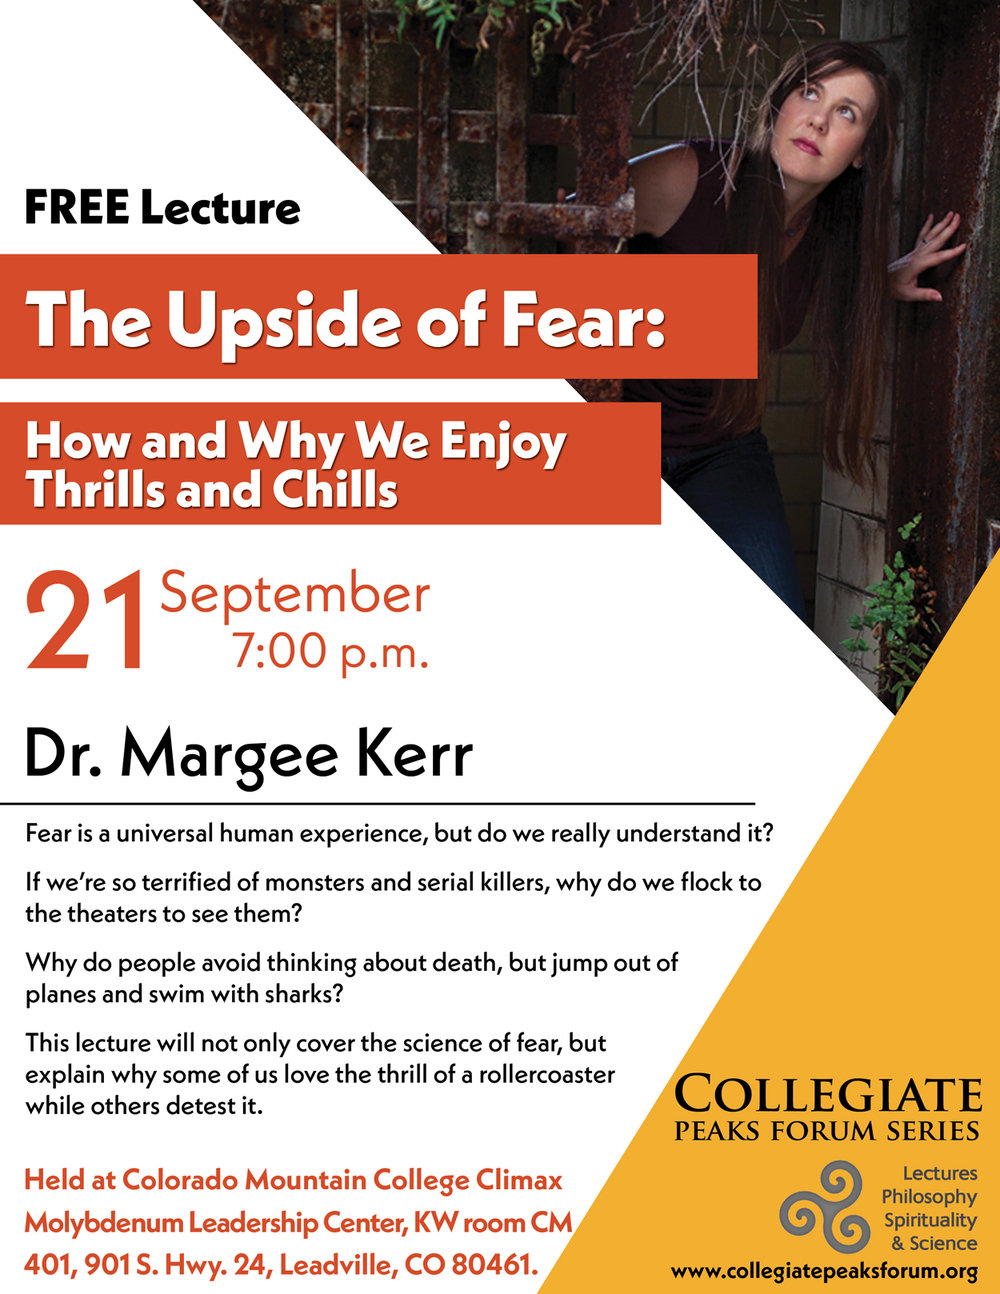 Sept. 21, 2017 Dr. Margee Kerr